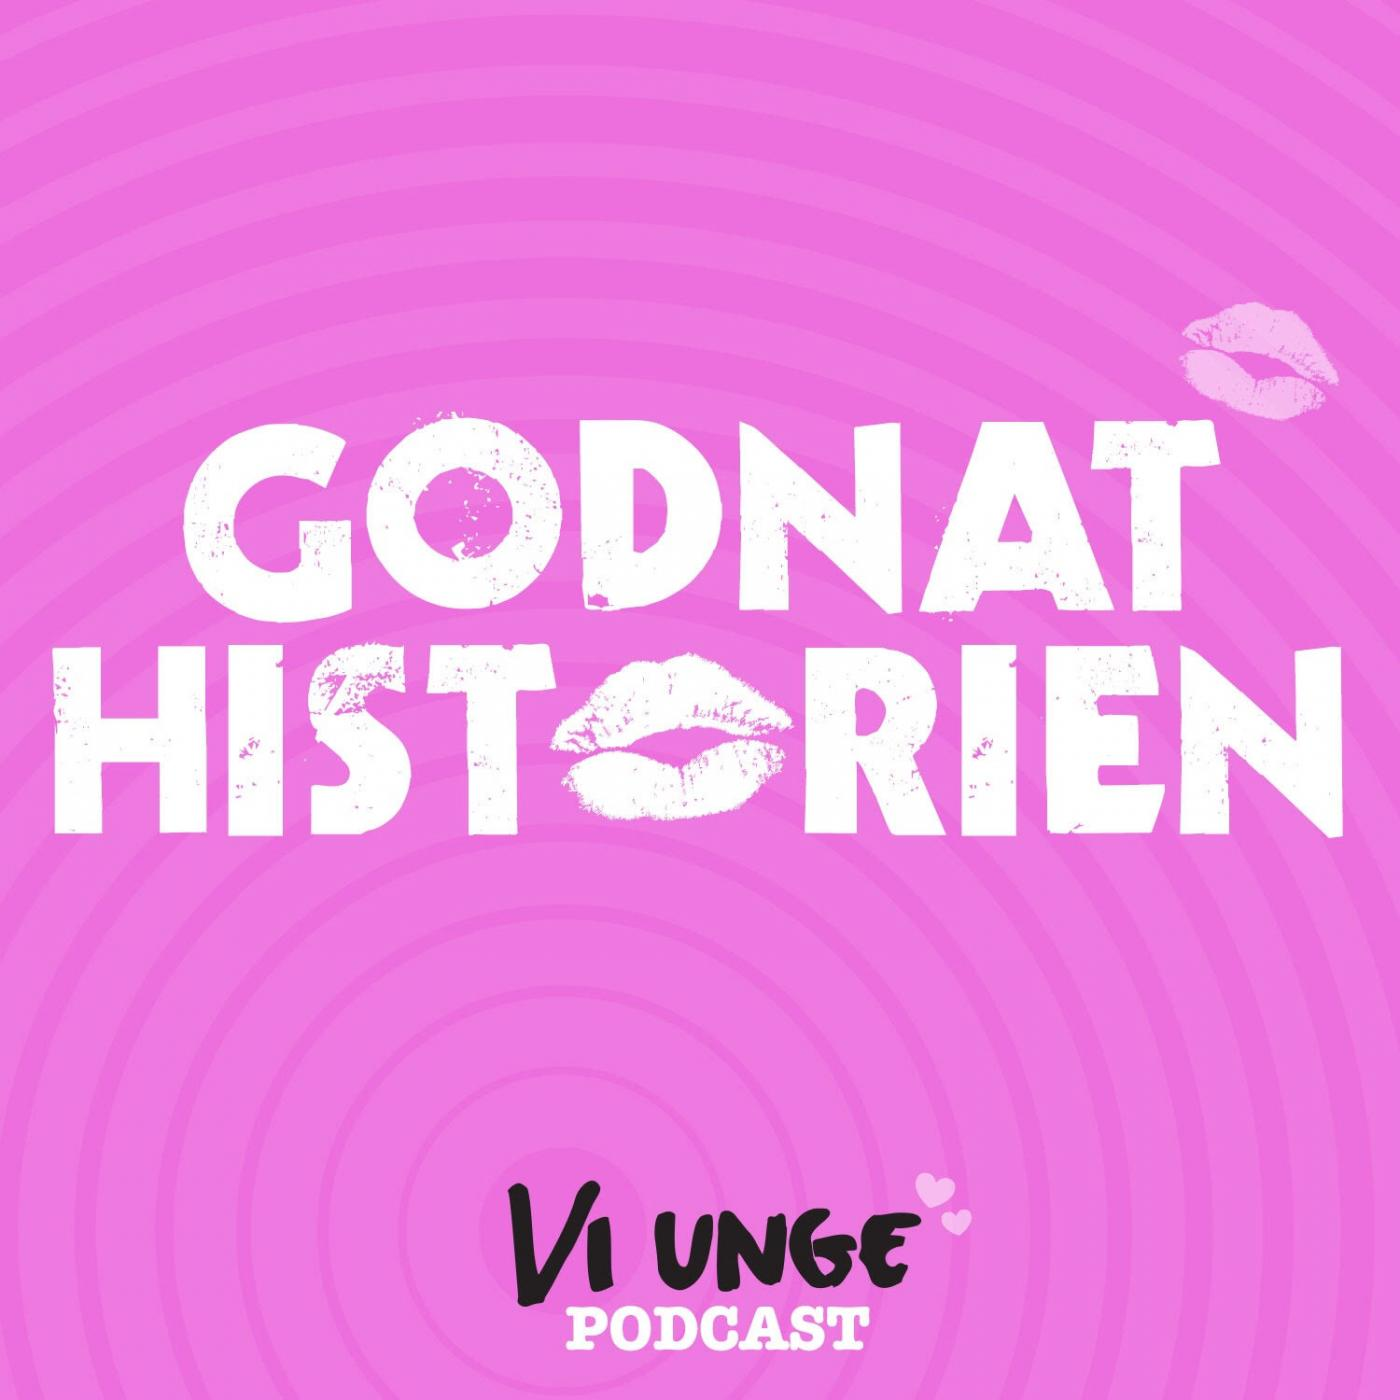 Vi Unge Podcast